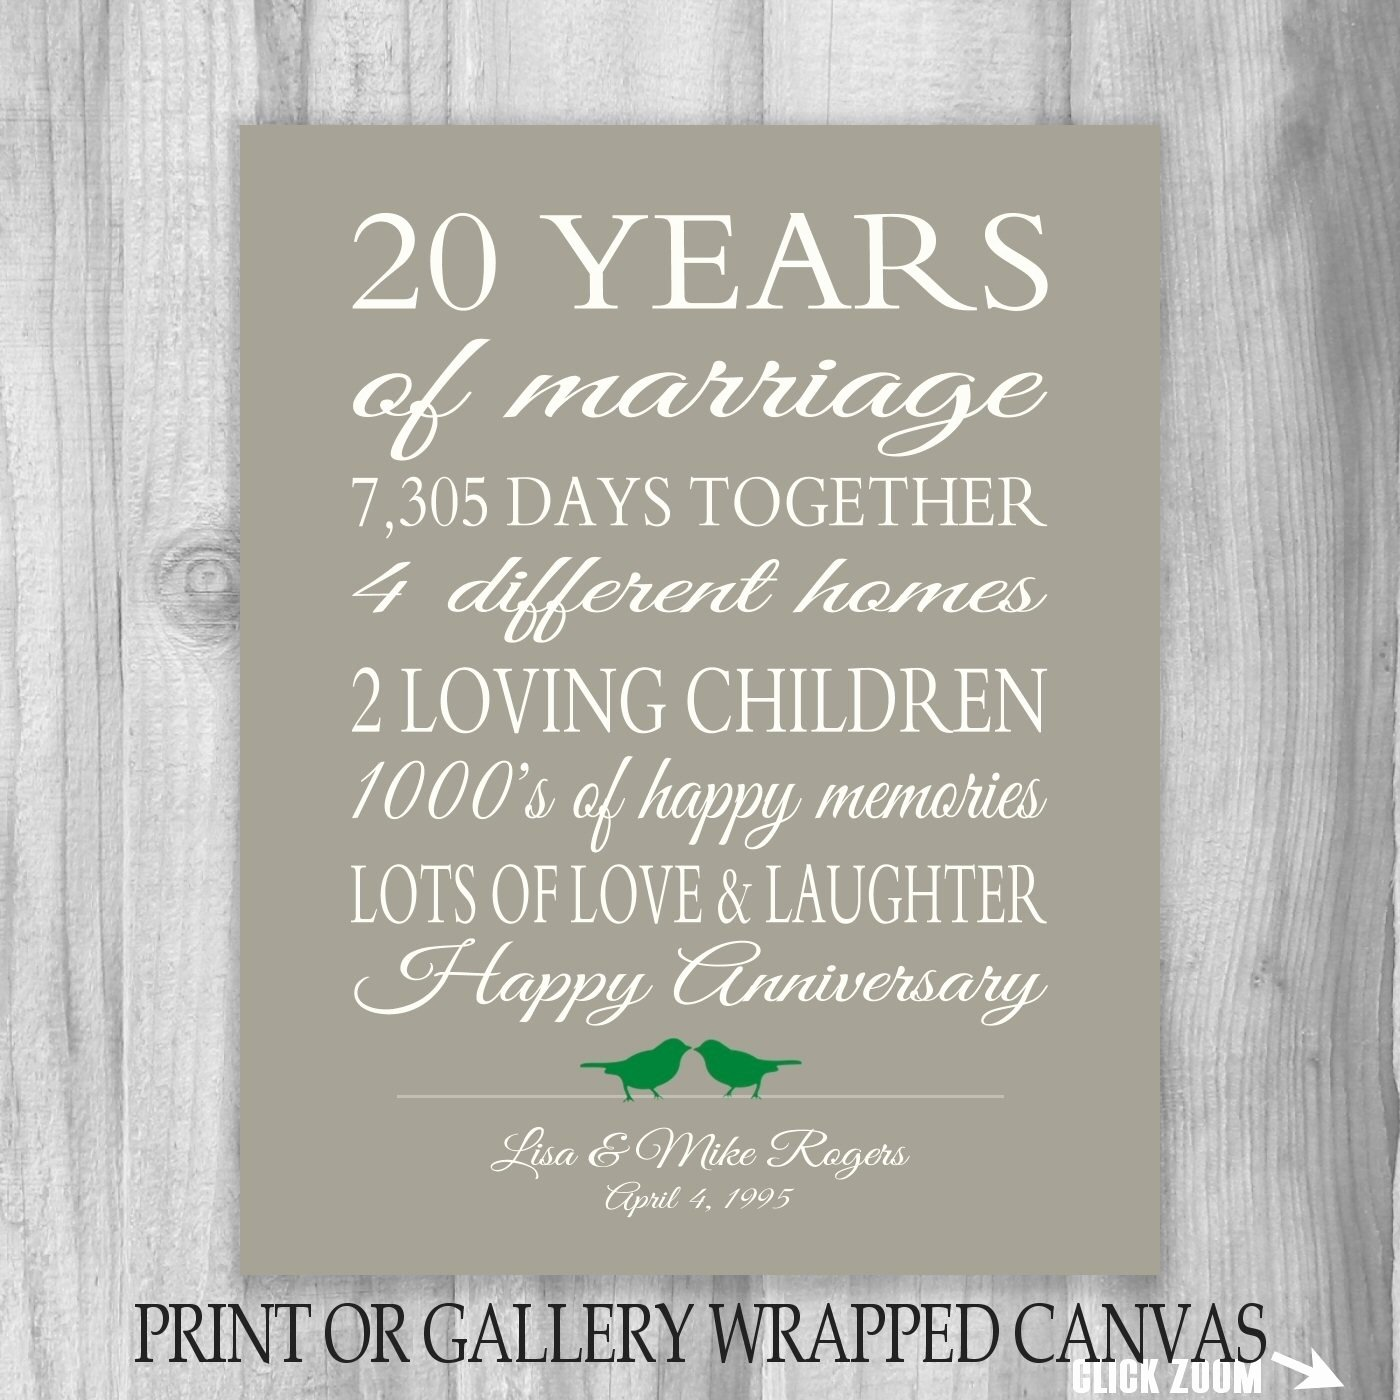 10 Fantastic 20Th Anniversary Gift Ideas For Wife 2 year wedding anniversary gifts for husband best of gifts design 1 2020